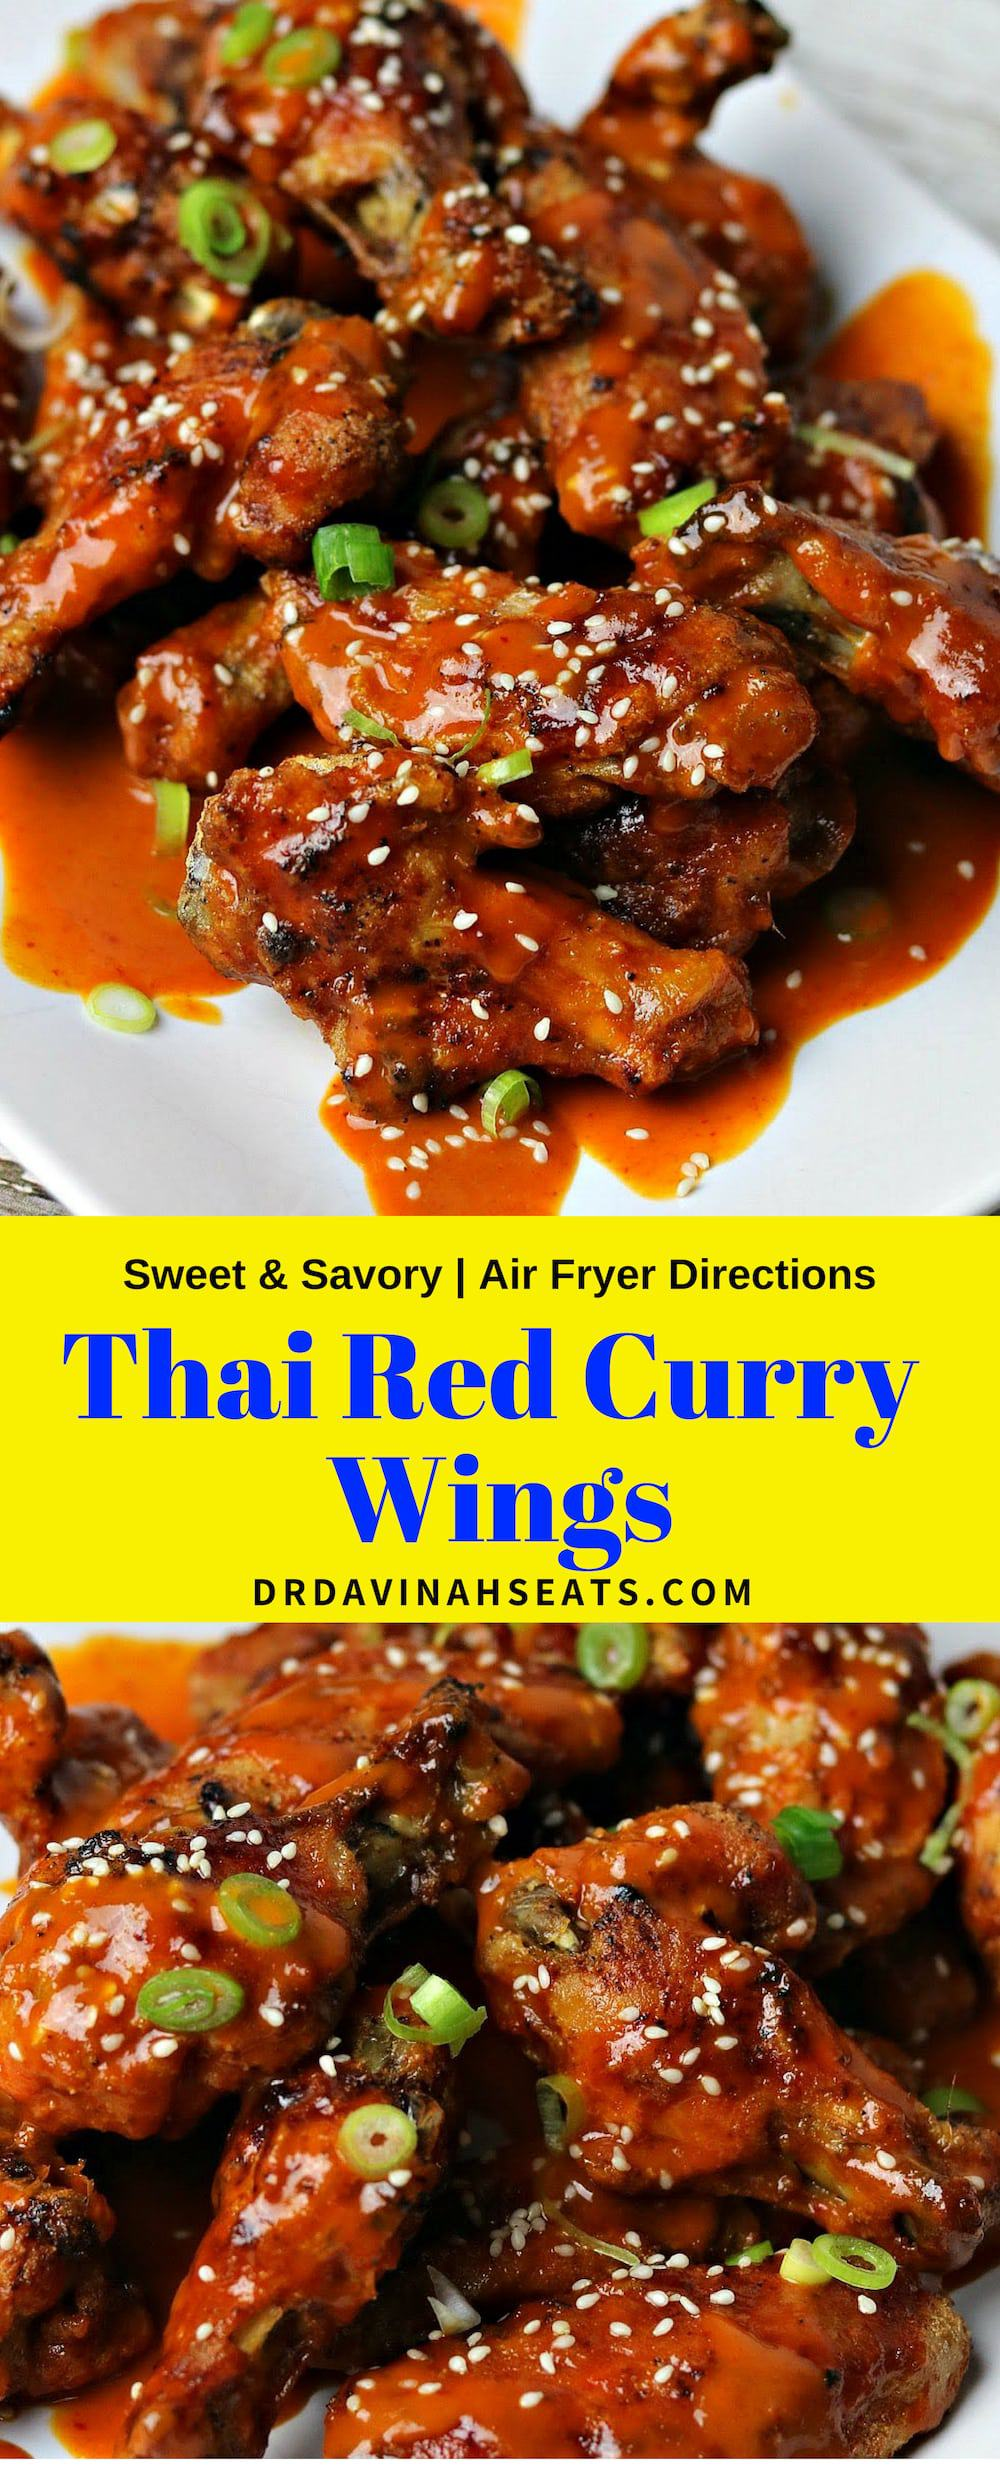 A keto and no sugar added recipe for Thai Red Curry Chicken Wings that was inspired by the Thai Curry sauce from Buffalo Wild Wings. Directions for the air fryer and oven are included. #keto #chickenwings #copycatrecipe #ketorecipes #lowcarbrecipes #redcurry #thaikitchenredcurry